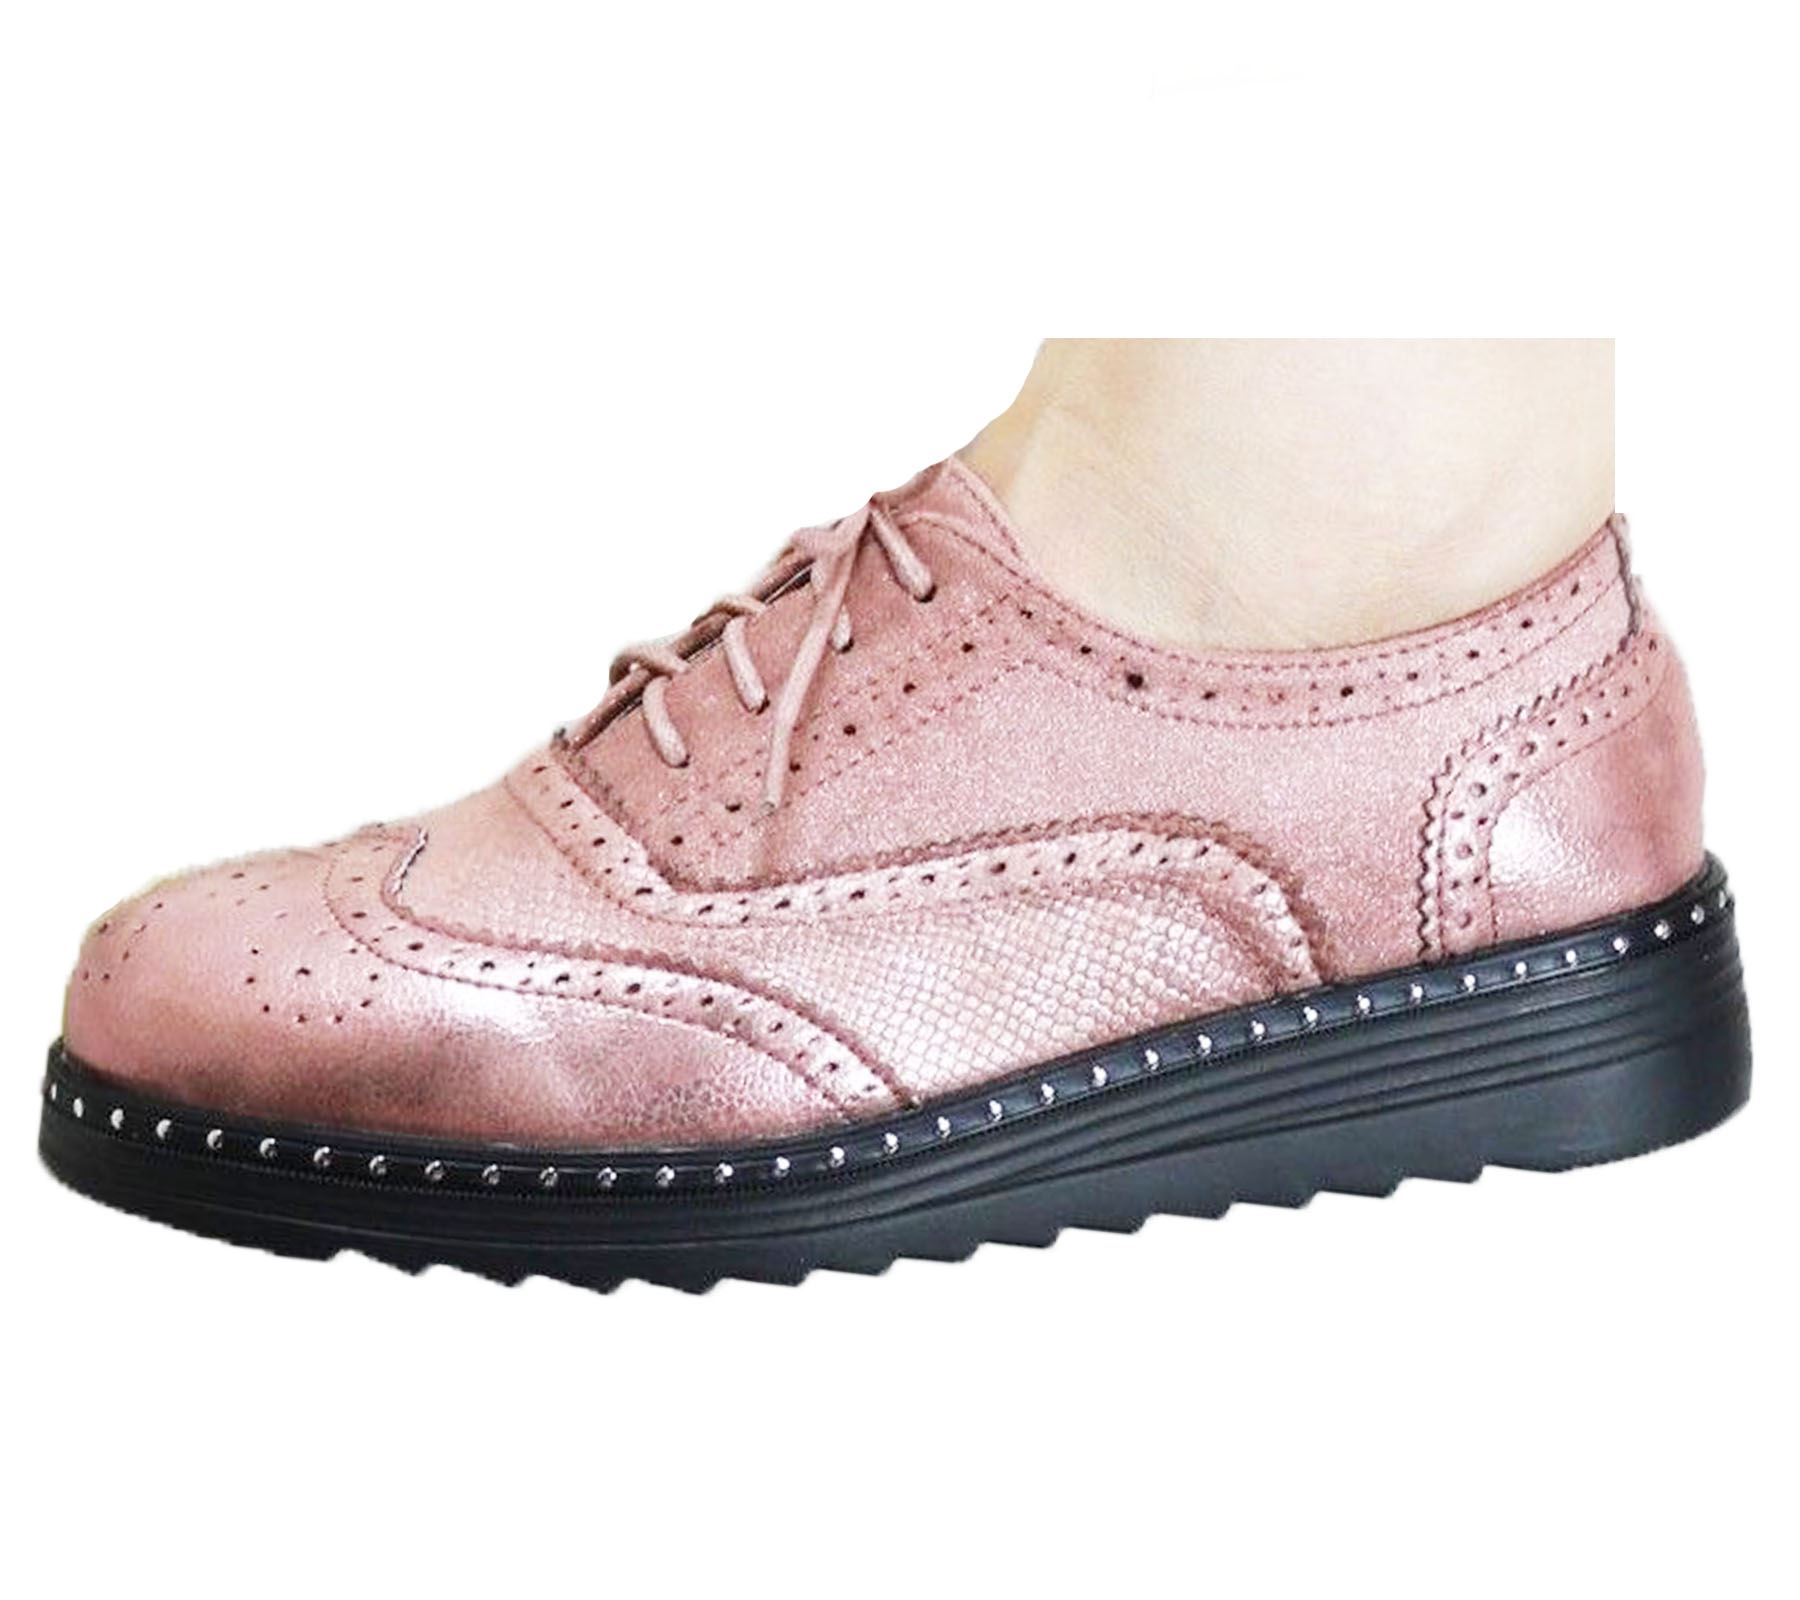 Ladies-Brogue-Lace-Up-Shoes-Womens-Oxford-Smart-Office-Loafers-Shoes miniatura 28